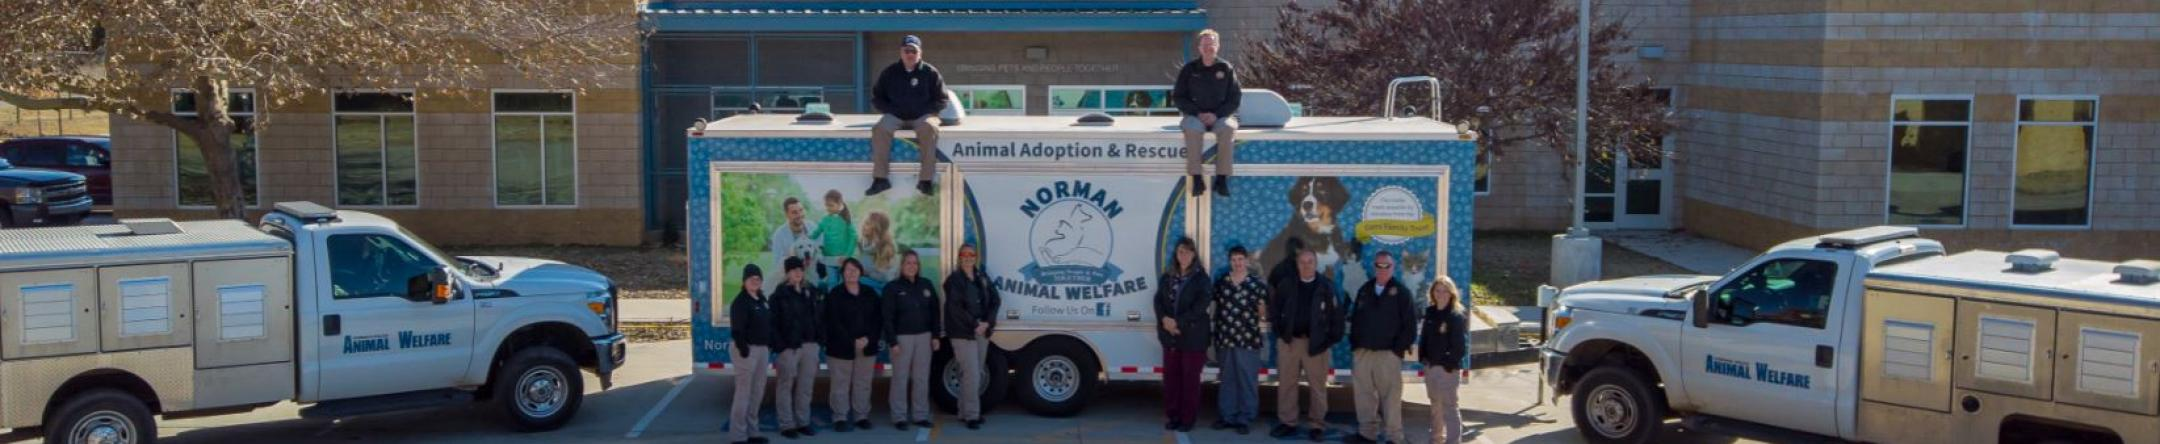 Animal Welfare - Staff Photo